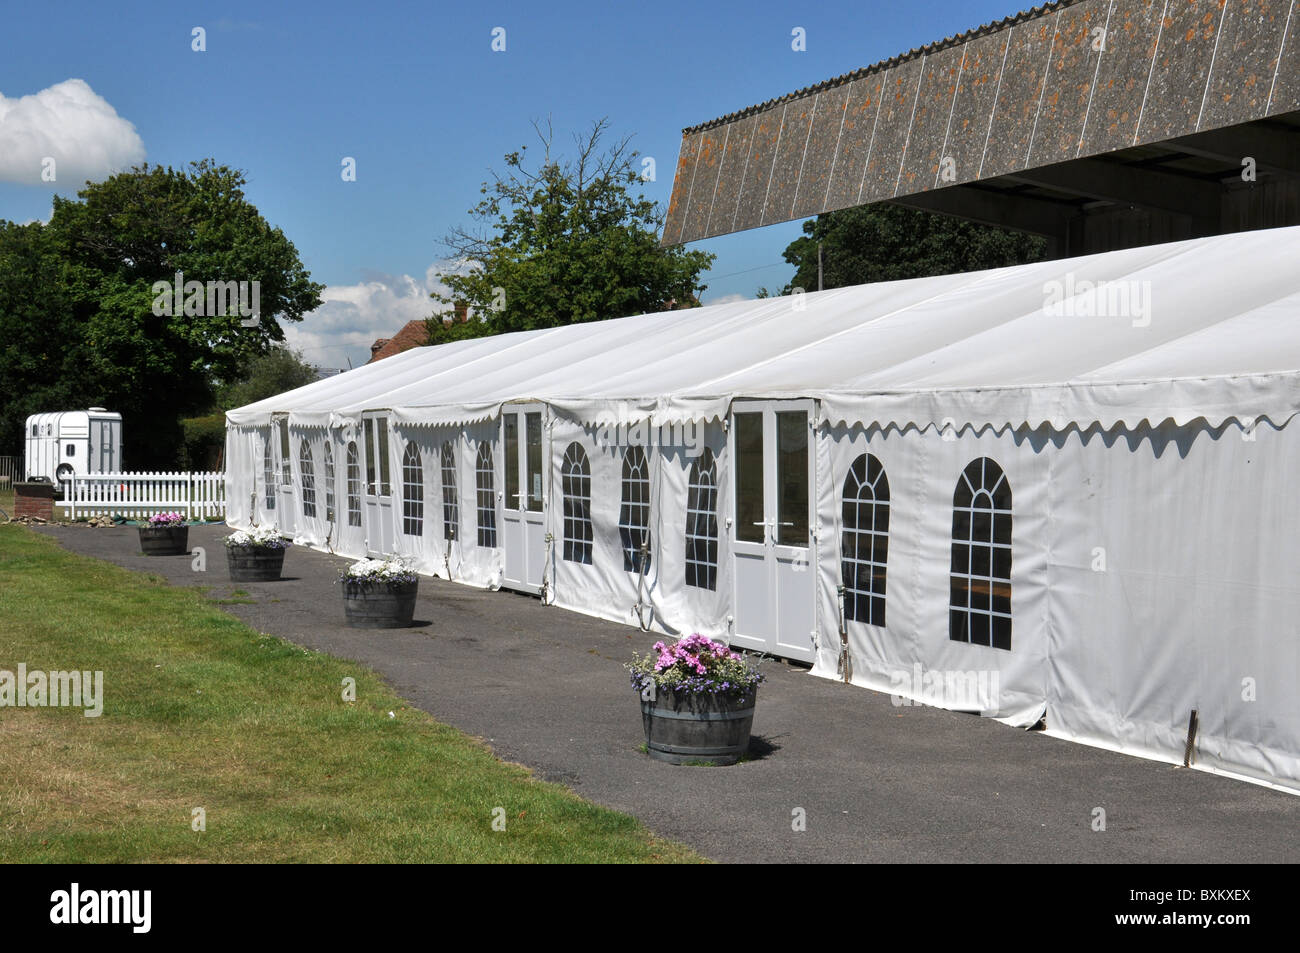 Hospitality marquee - Stock Image